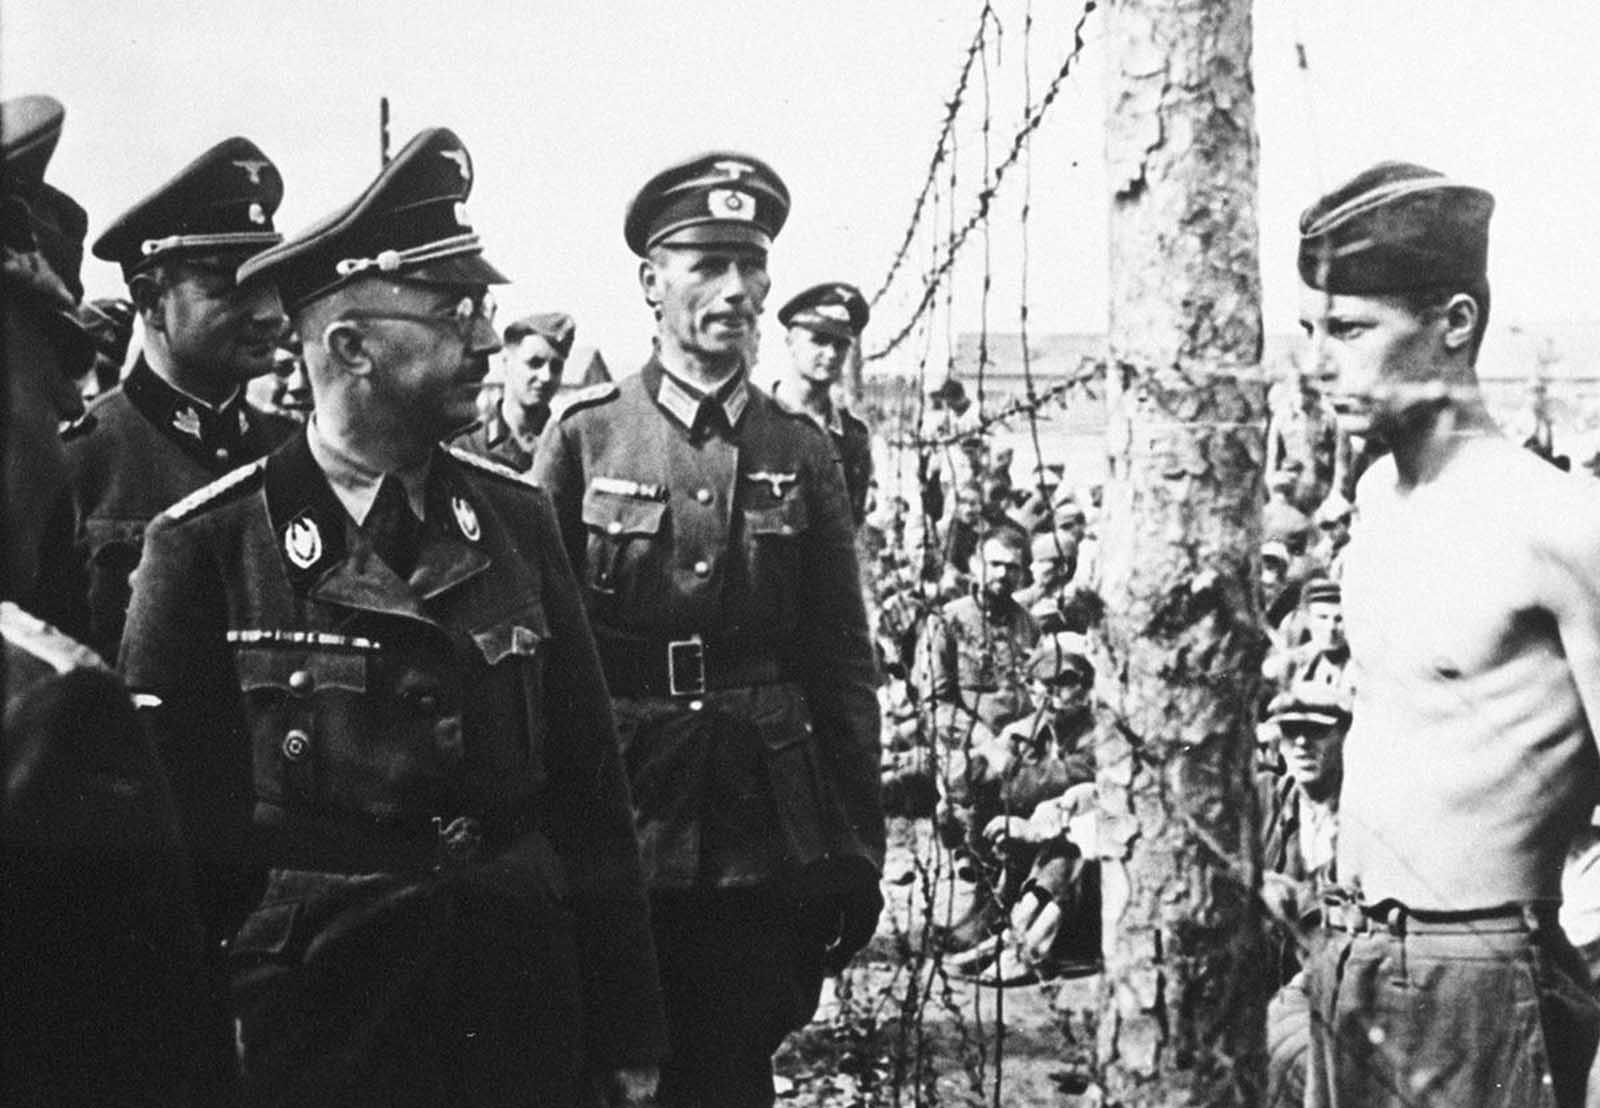 Heinrich Himmler (left, in glasses), head of the Gestapo and the Waffen-SS, inspects a prisoner-of-war camp in this from 1940-41 in Russia.